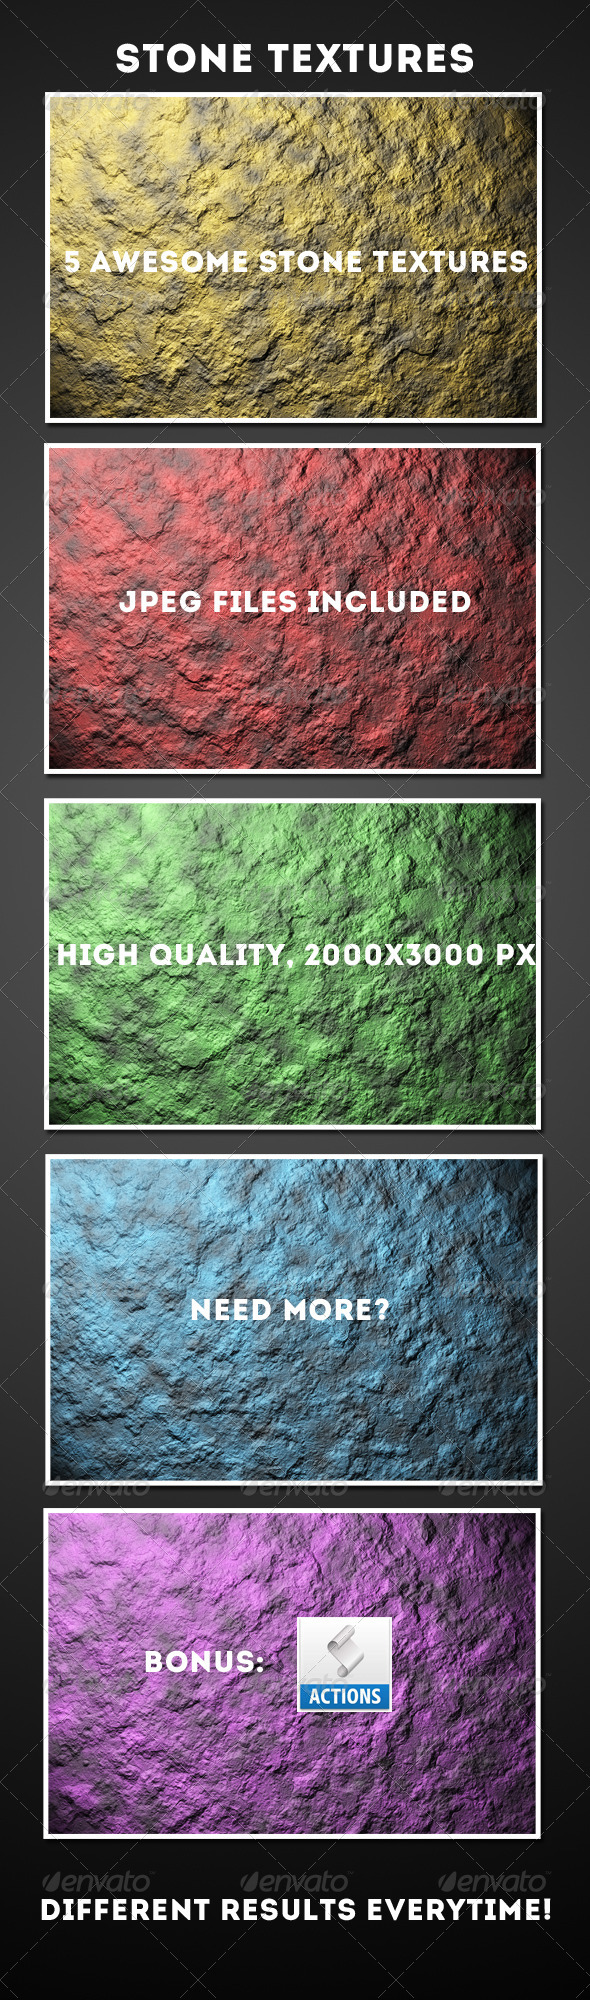 5 Colorful Stone Textures & Action